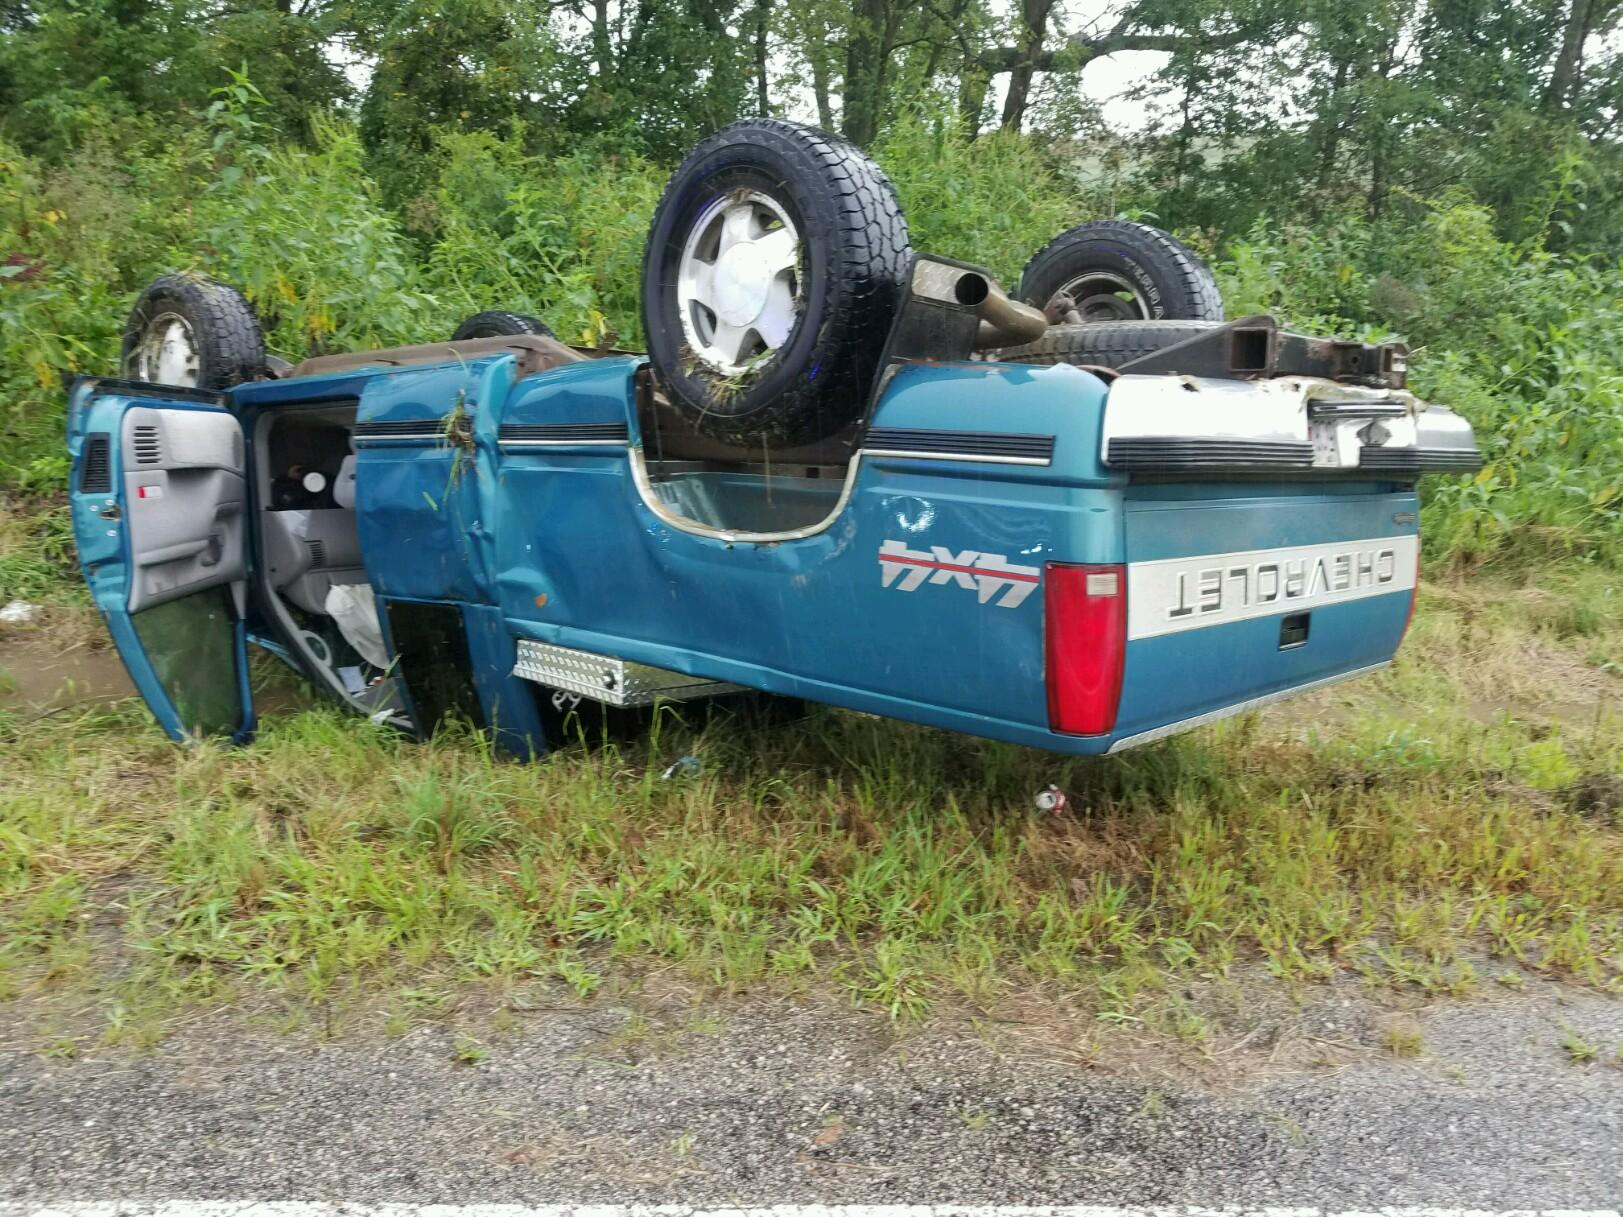 Driver in serious condition after crash in Chariton County